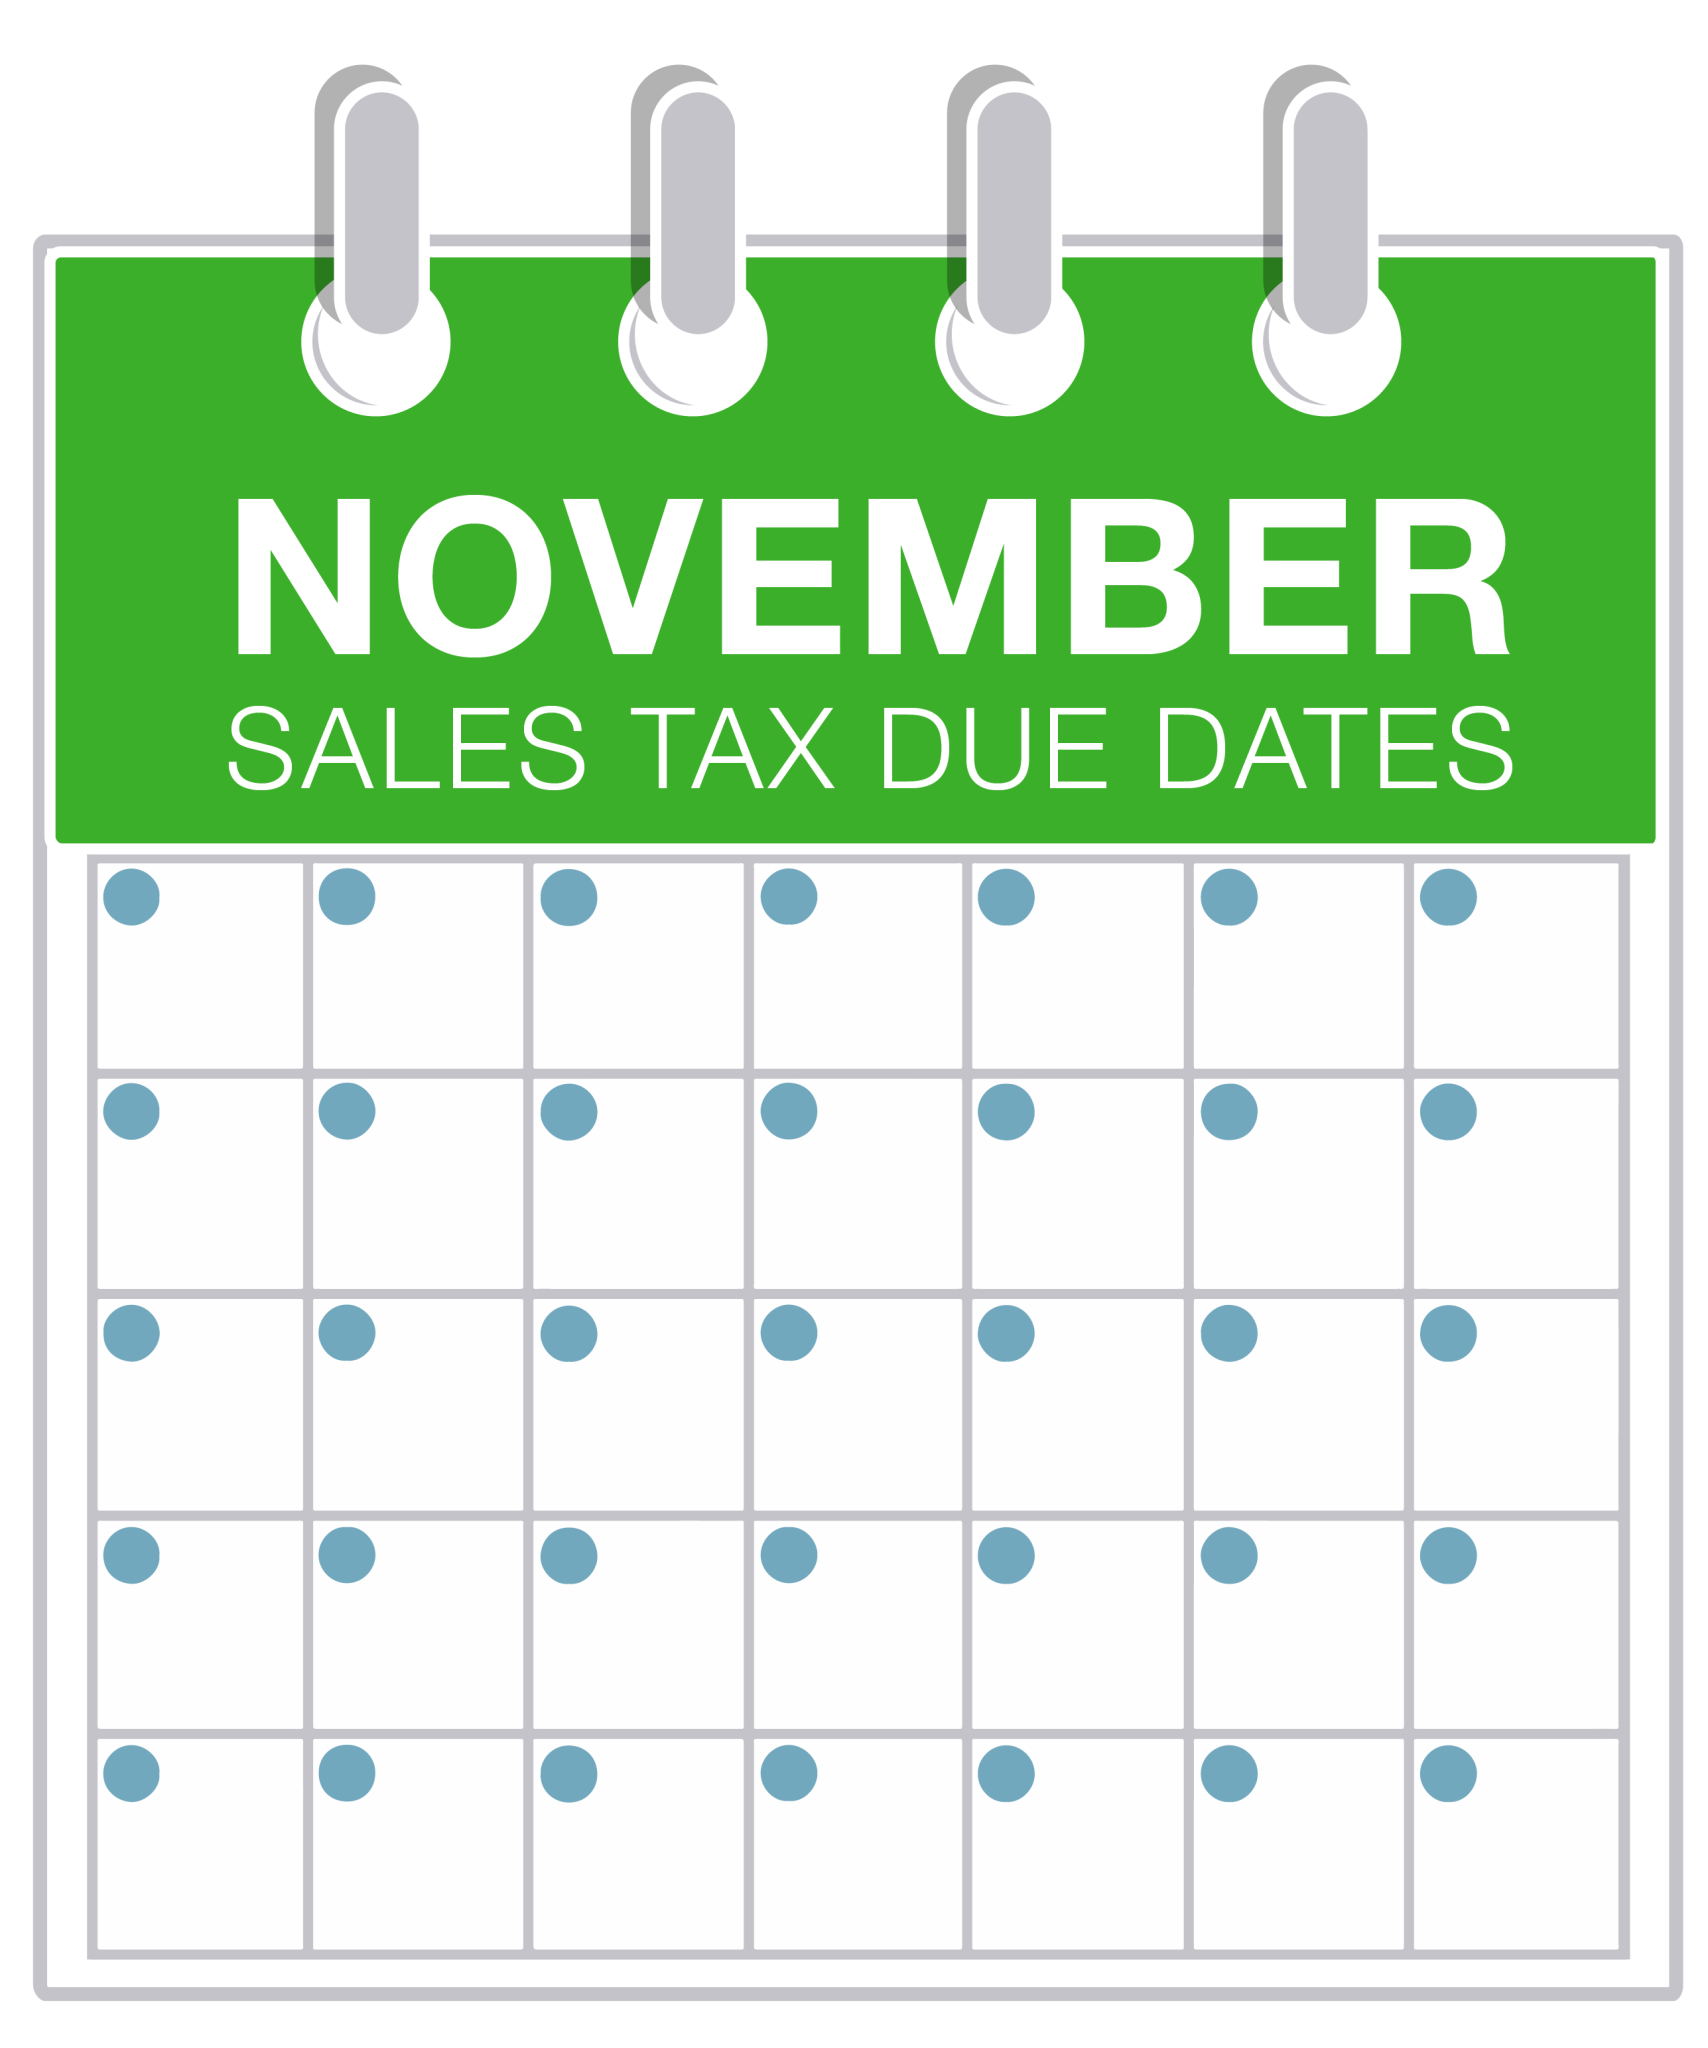 November Sales Tax Due Dates 2016